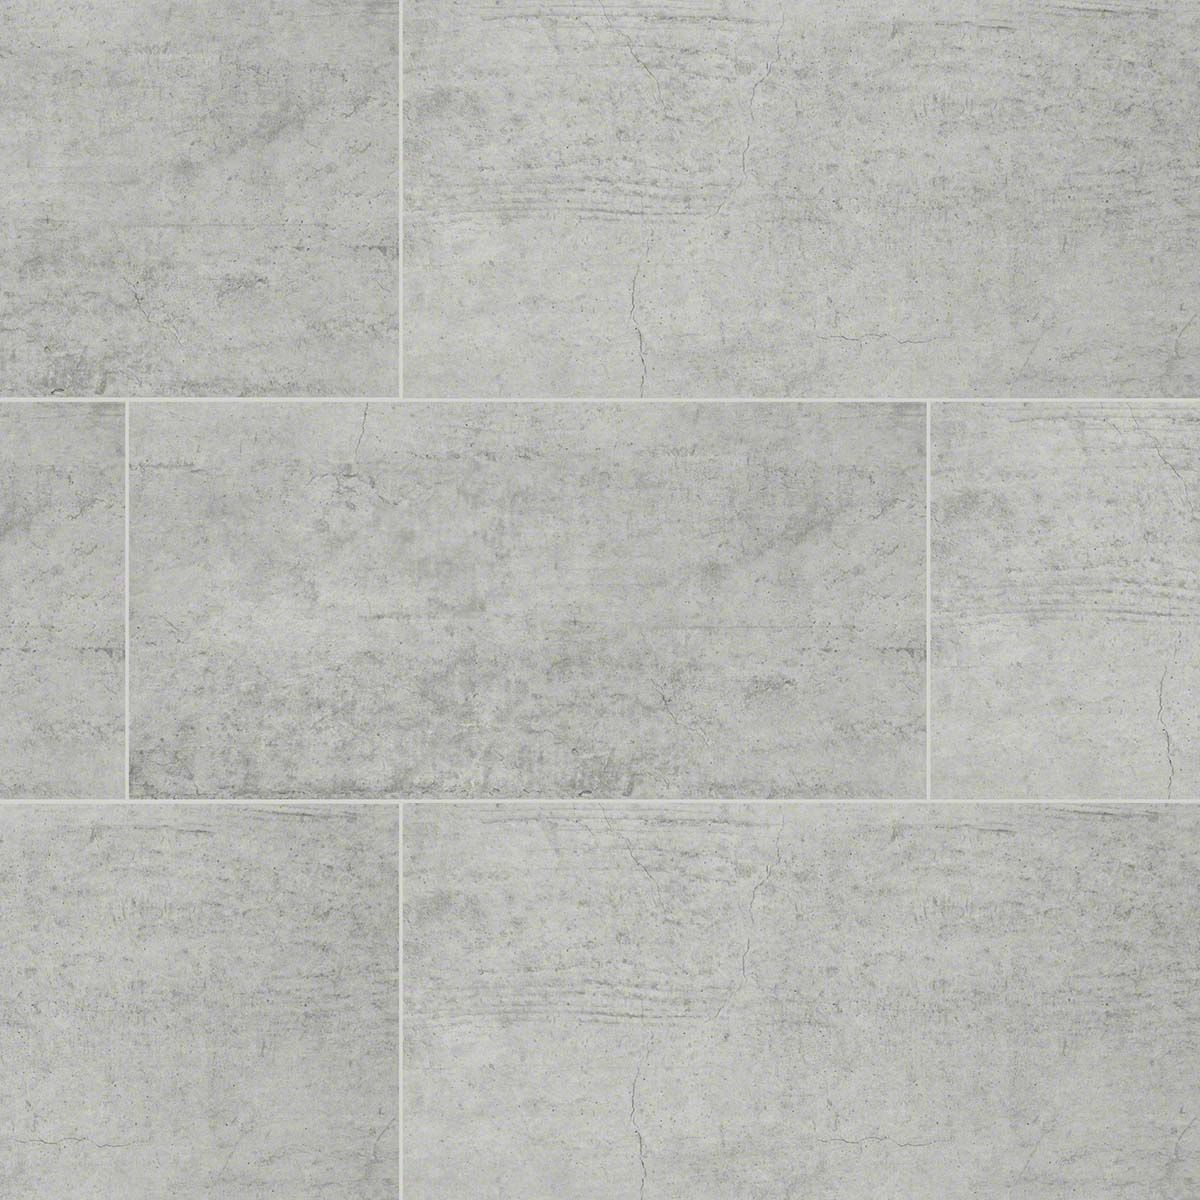 Cenera cementoseries porcelain tile tile and stone msi cemento novara x porcelain tile in gray dailygadgetfo Gallery